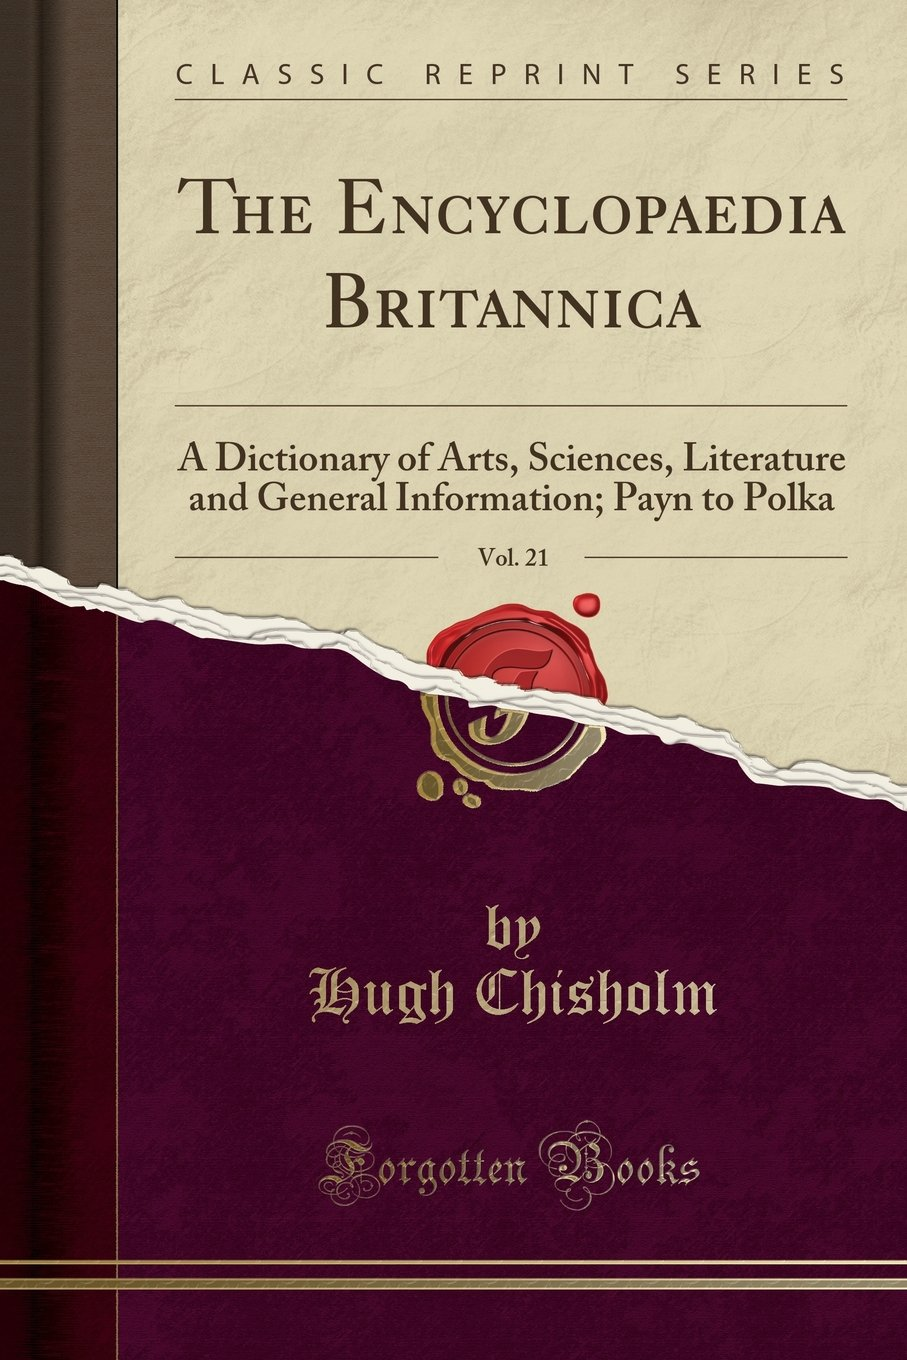 The Encyclopaedia Britannica, Vol. 21: A Dictionary of Arts, Sciences, Literature and General Information; Payn to Polka (Classic Reprint) ebook